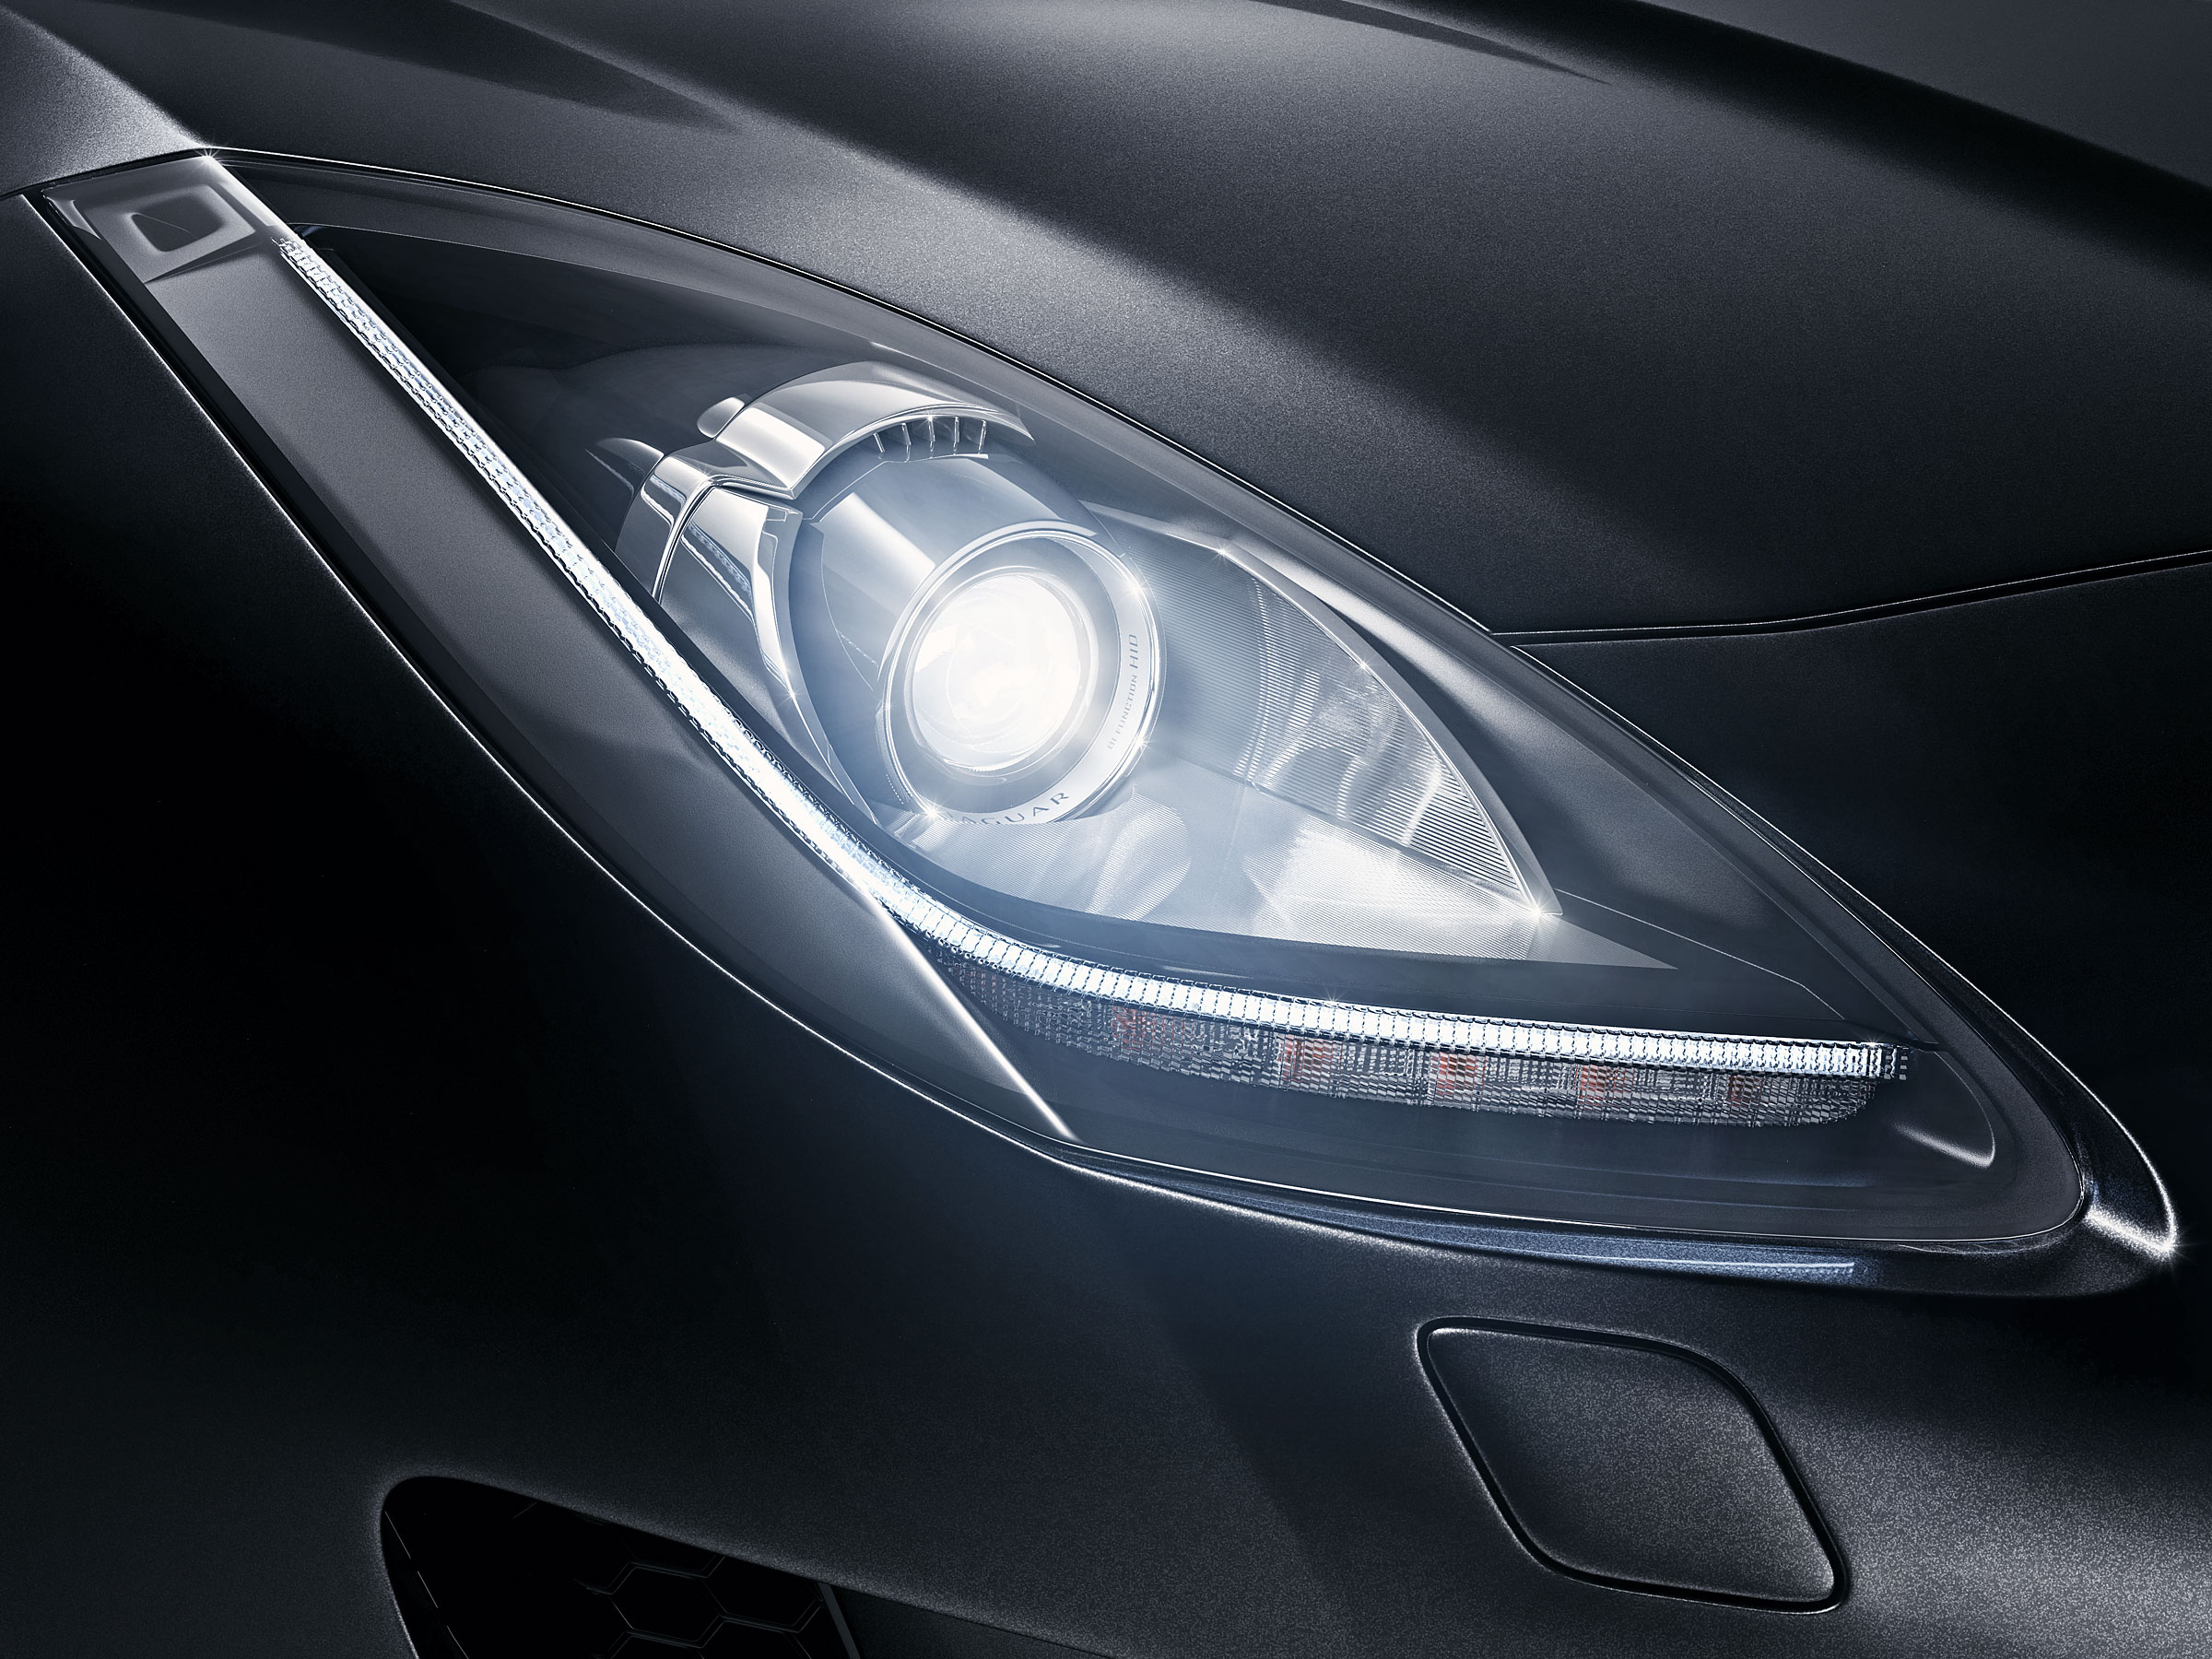 jaguar-ftype-f-type-tank-cgi-retouch-london-post-production-headlight-studio